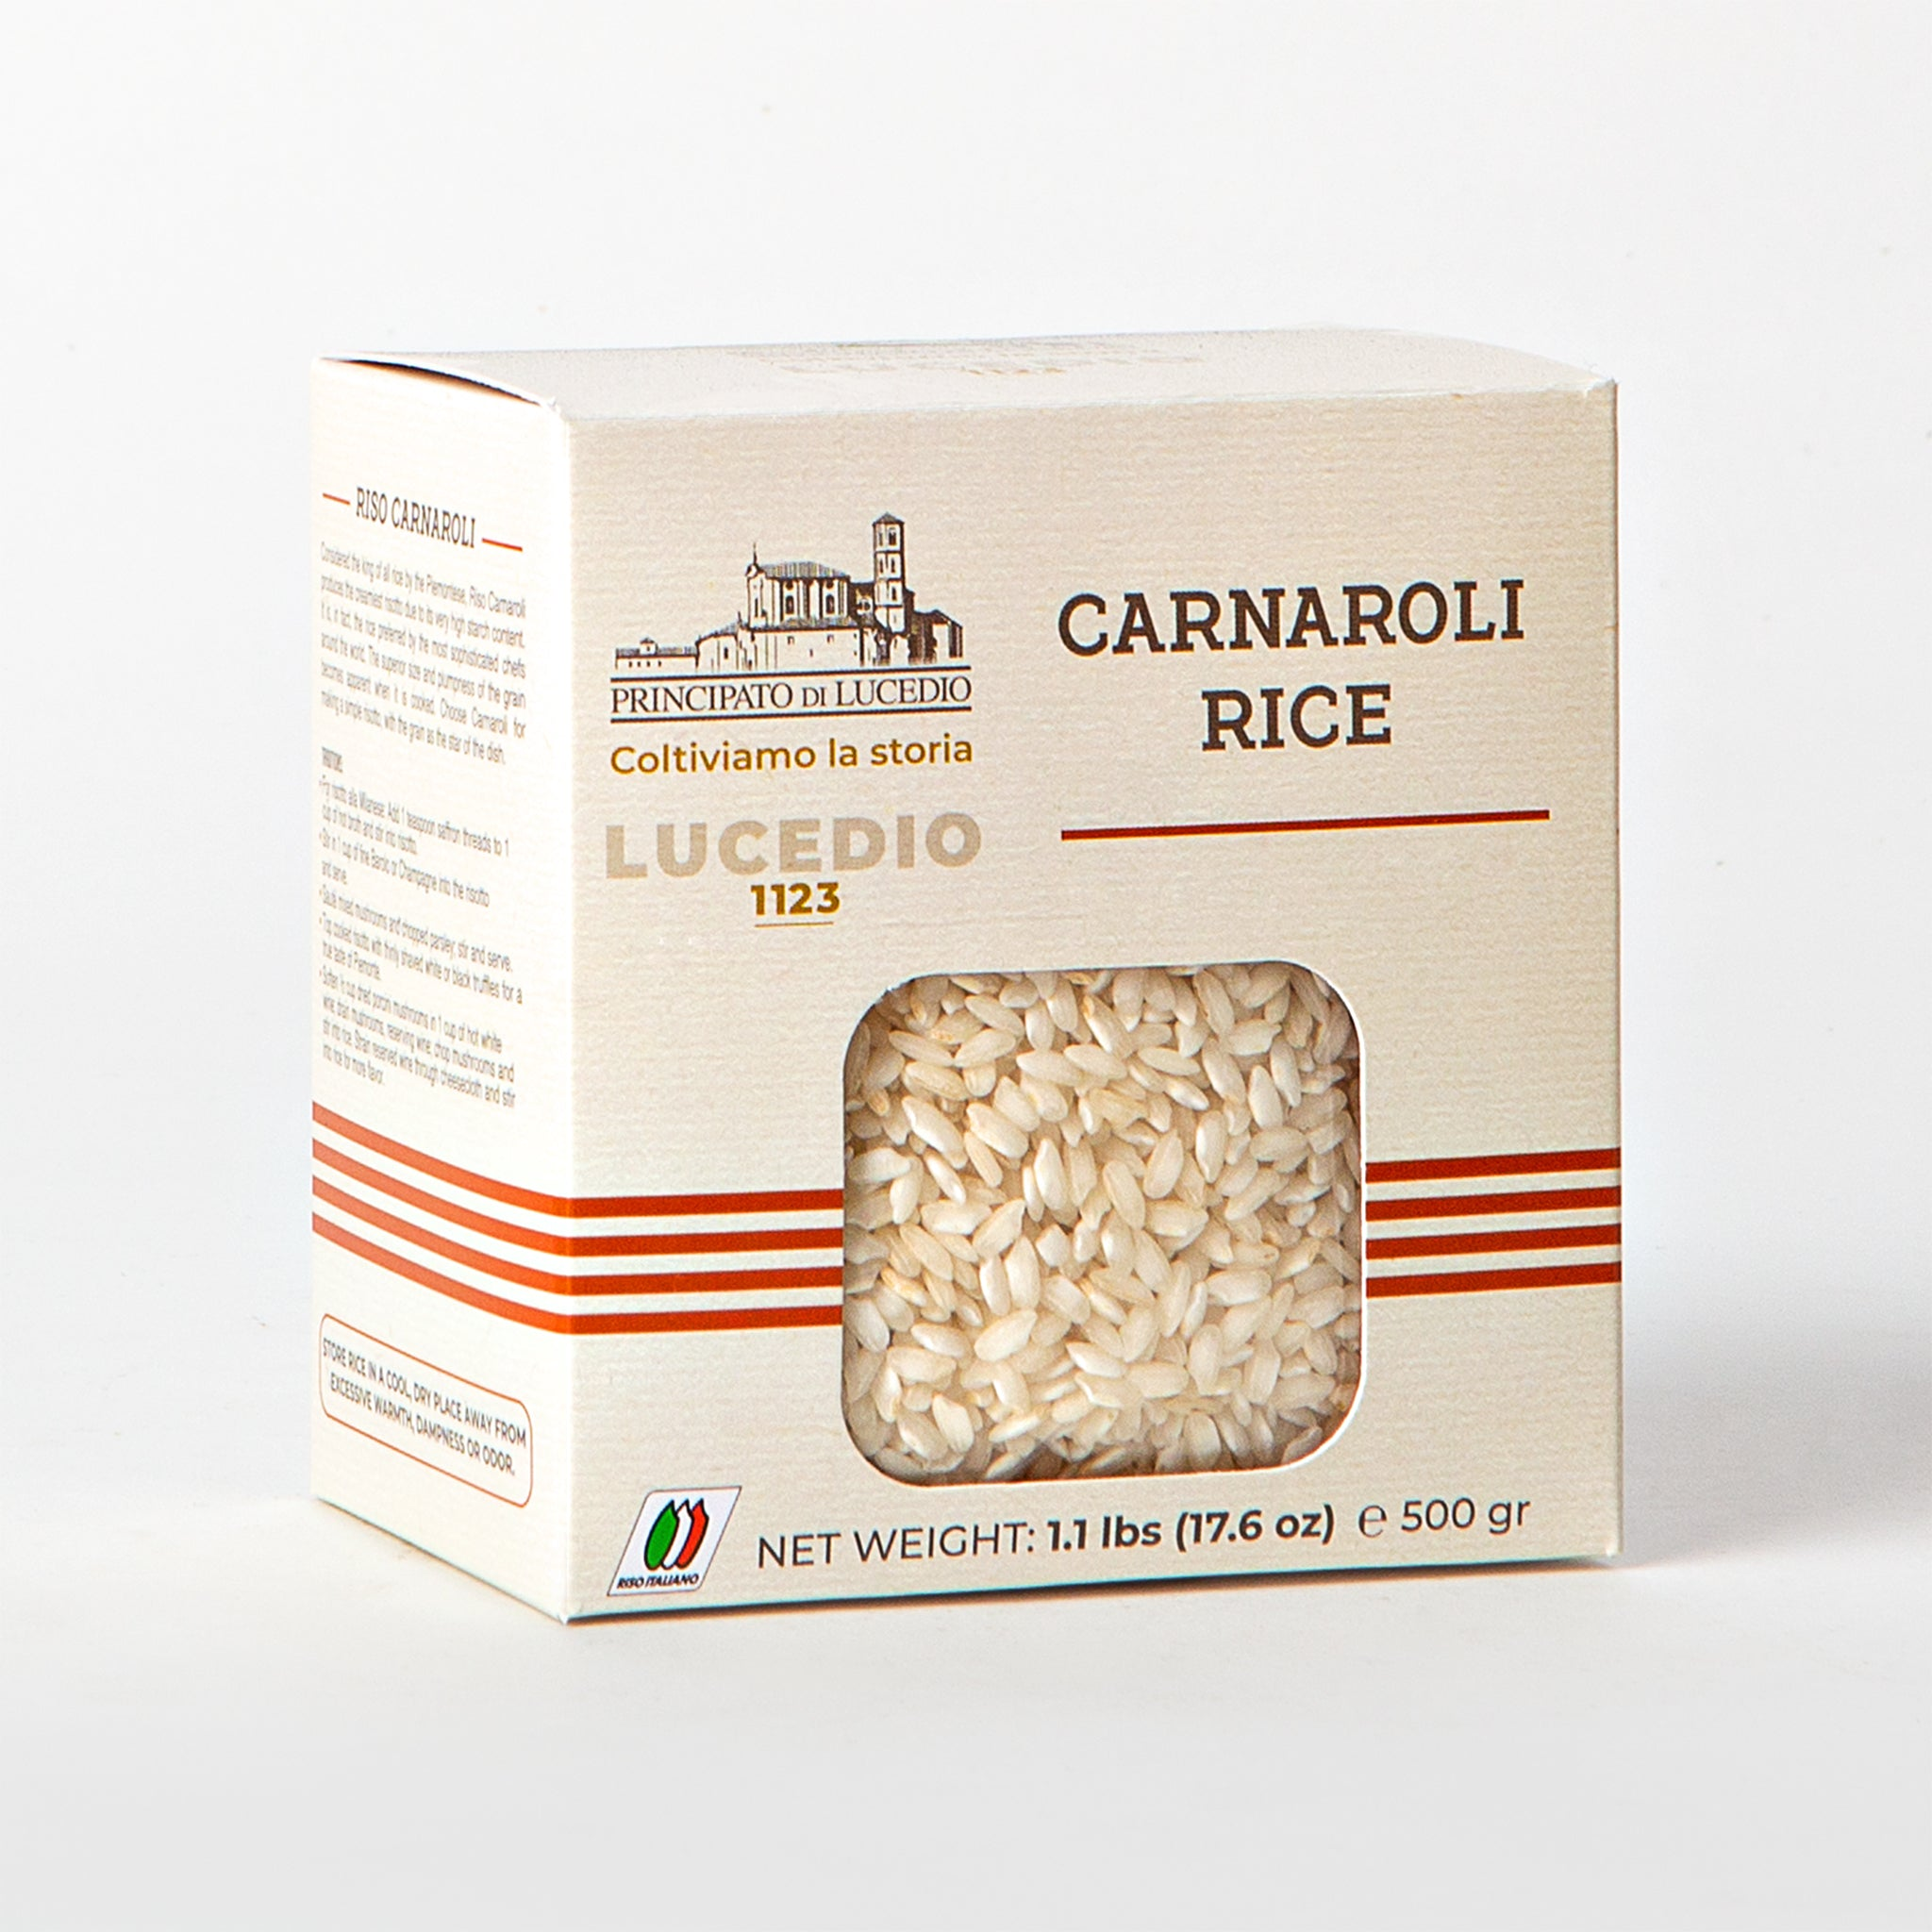 Carnaroli Rice from Principato di Lucedio